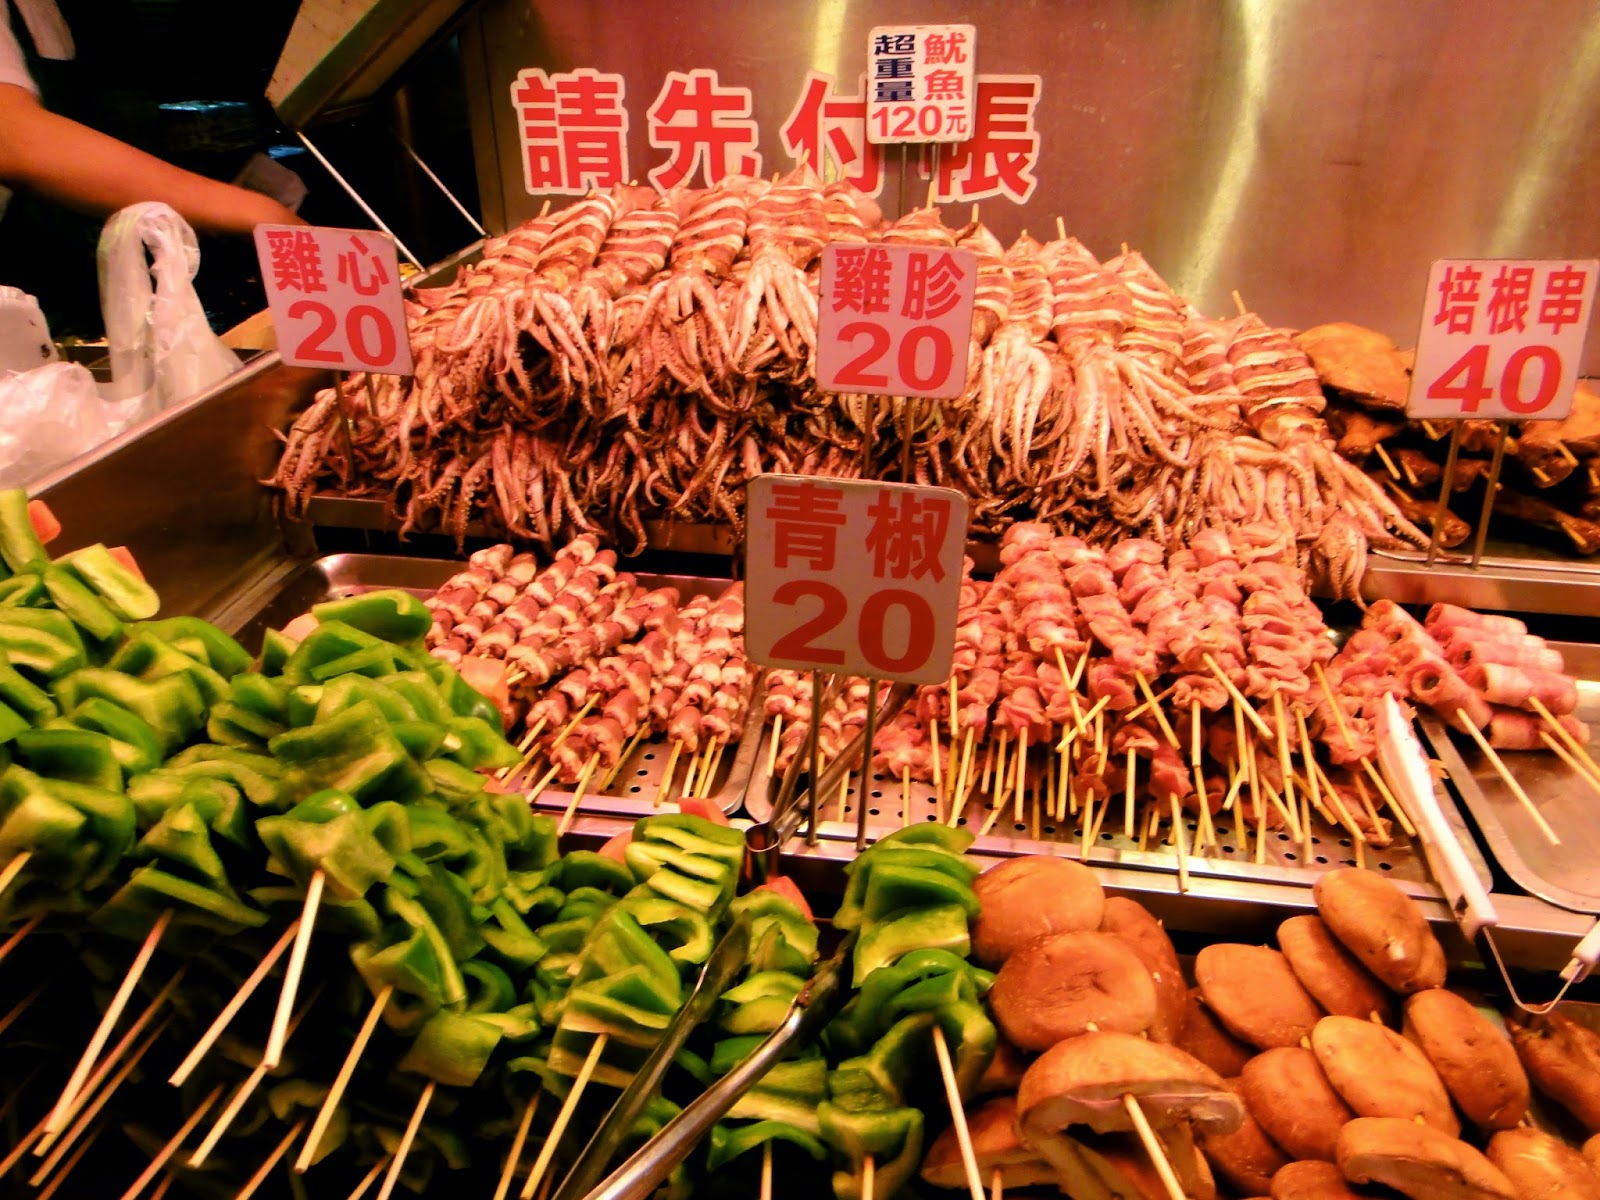 Grilled pepper and mushroom Zhiqiang Night Market Hualien